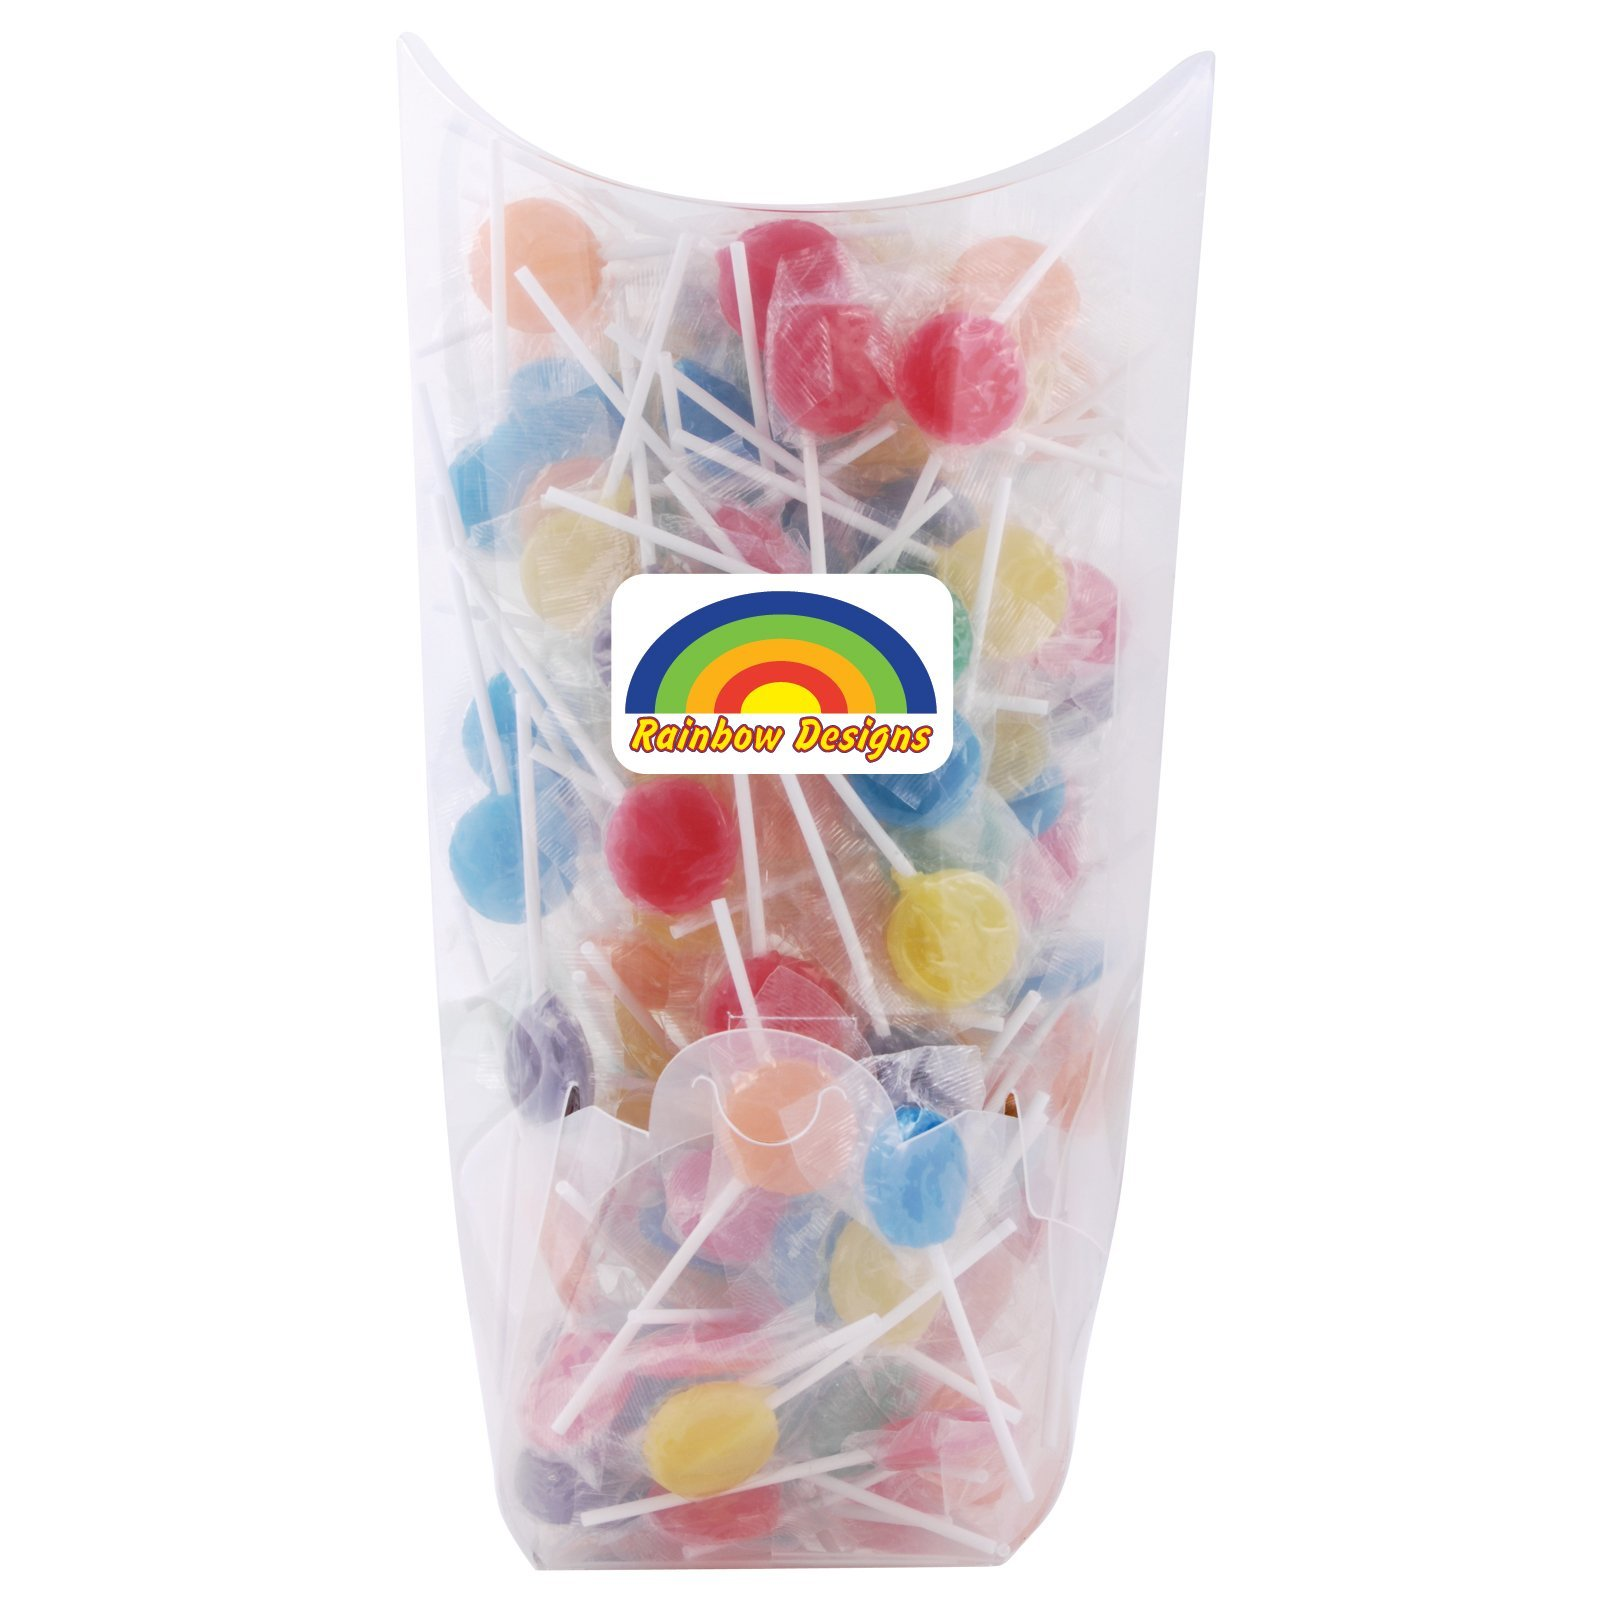 Lollipop 1 kilogram Dispenser